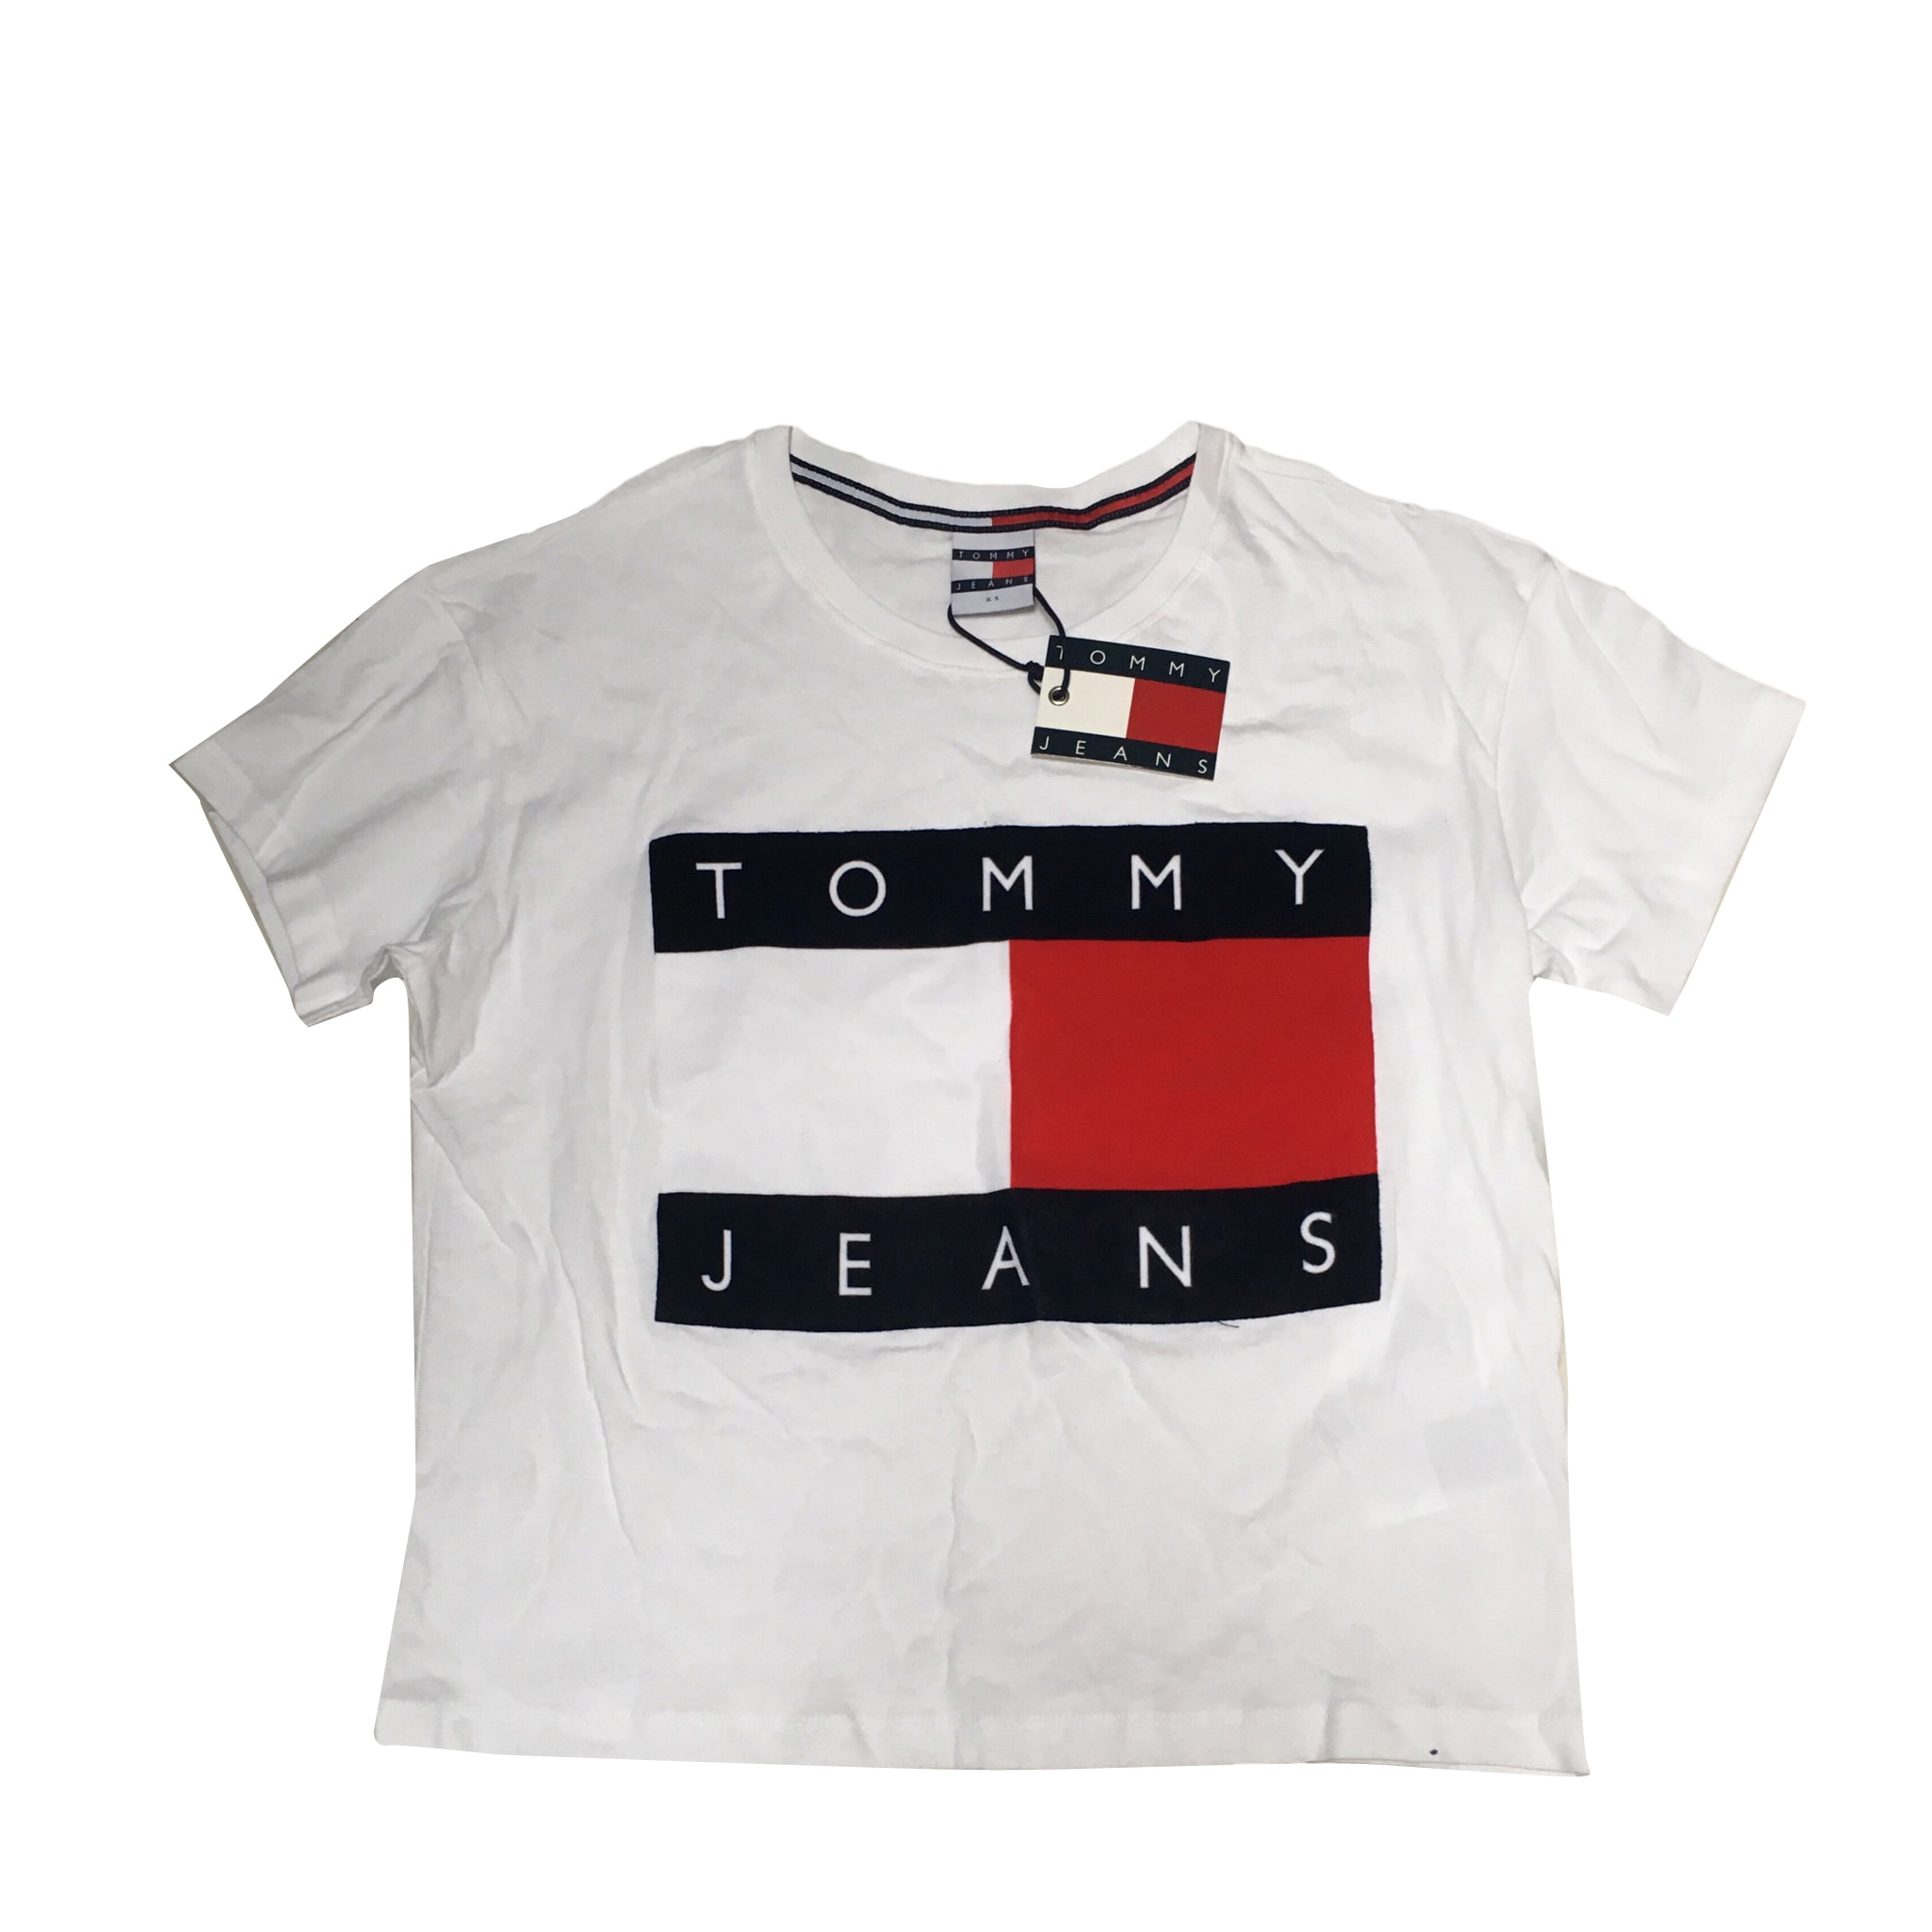 comment taille tommy hilfiger